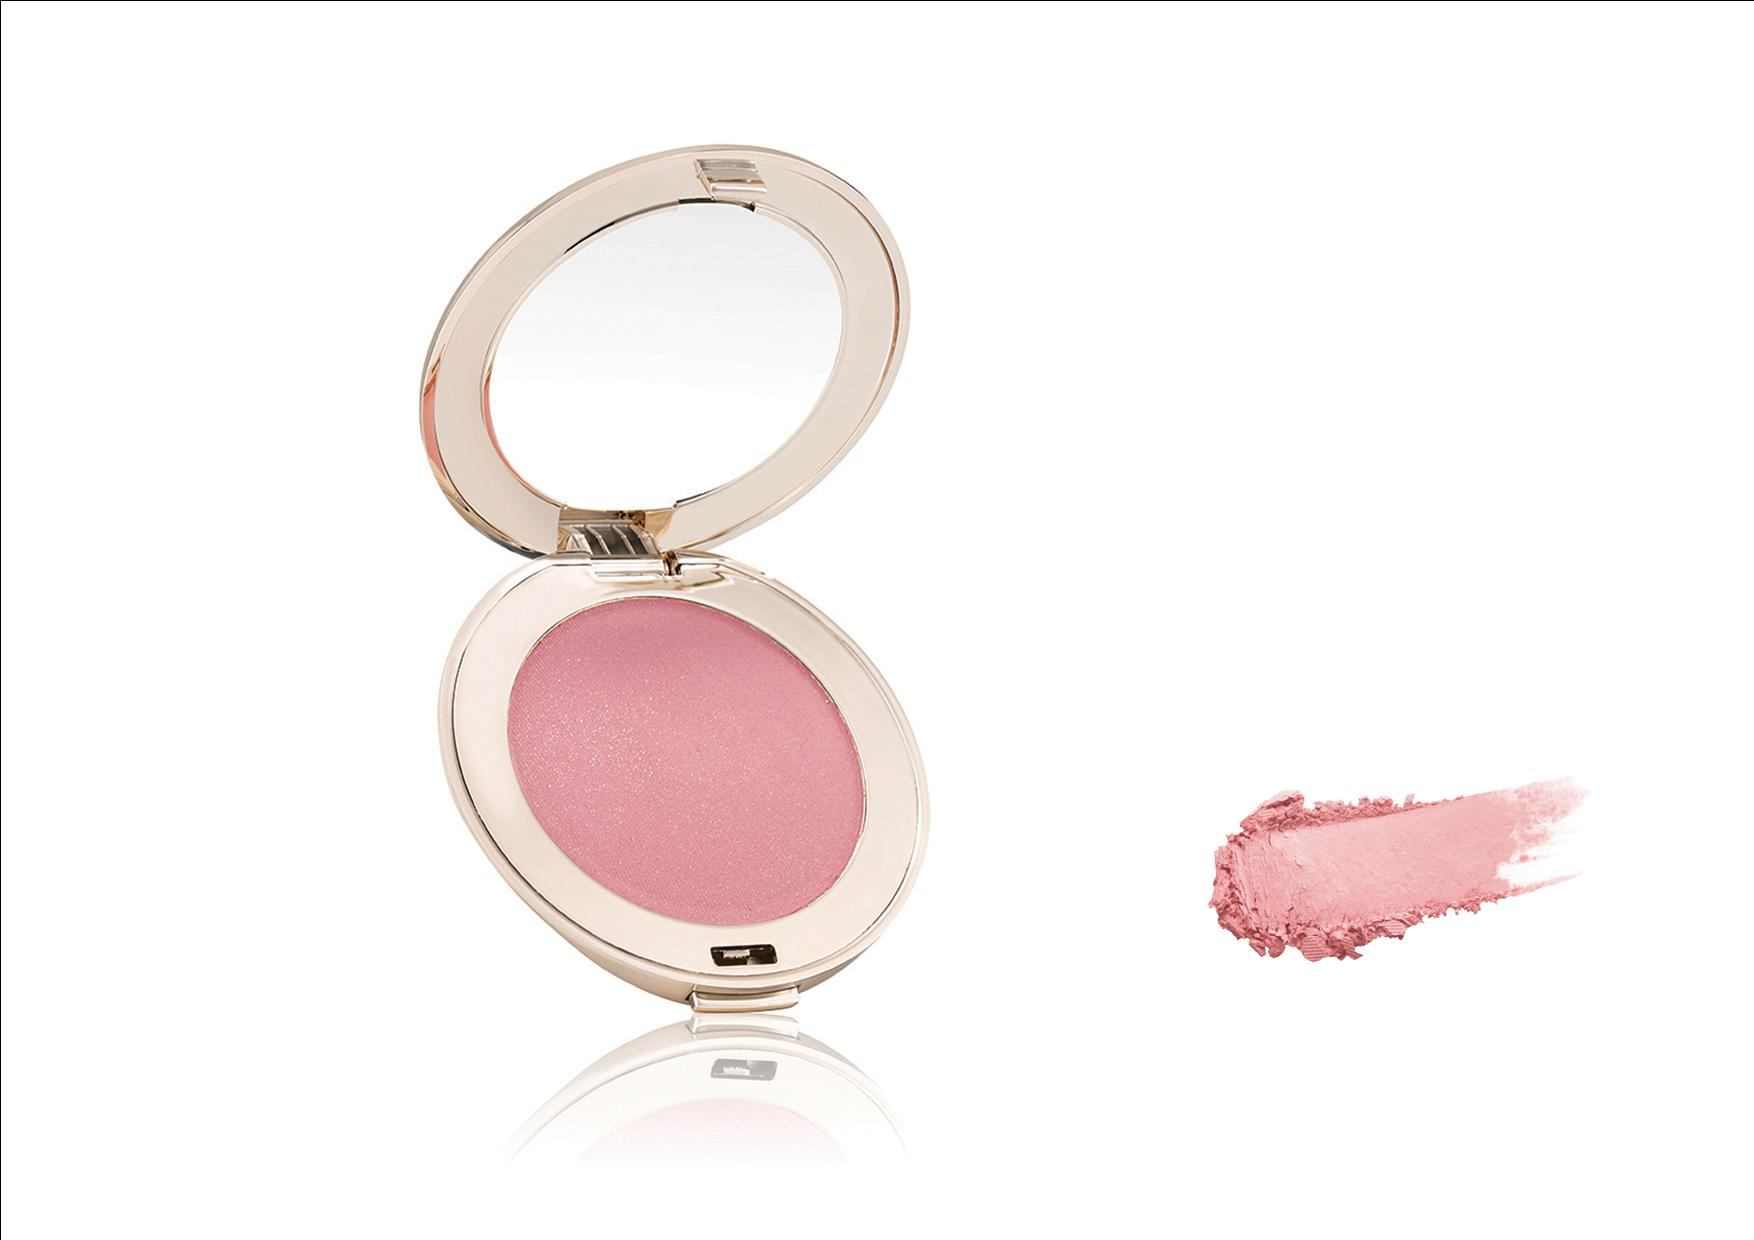 Jane Iredale WANGEN Pure Pressed Blush Clearly Pink